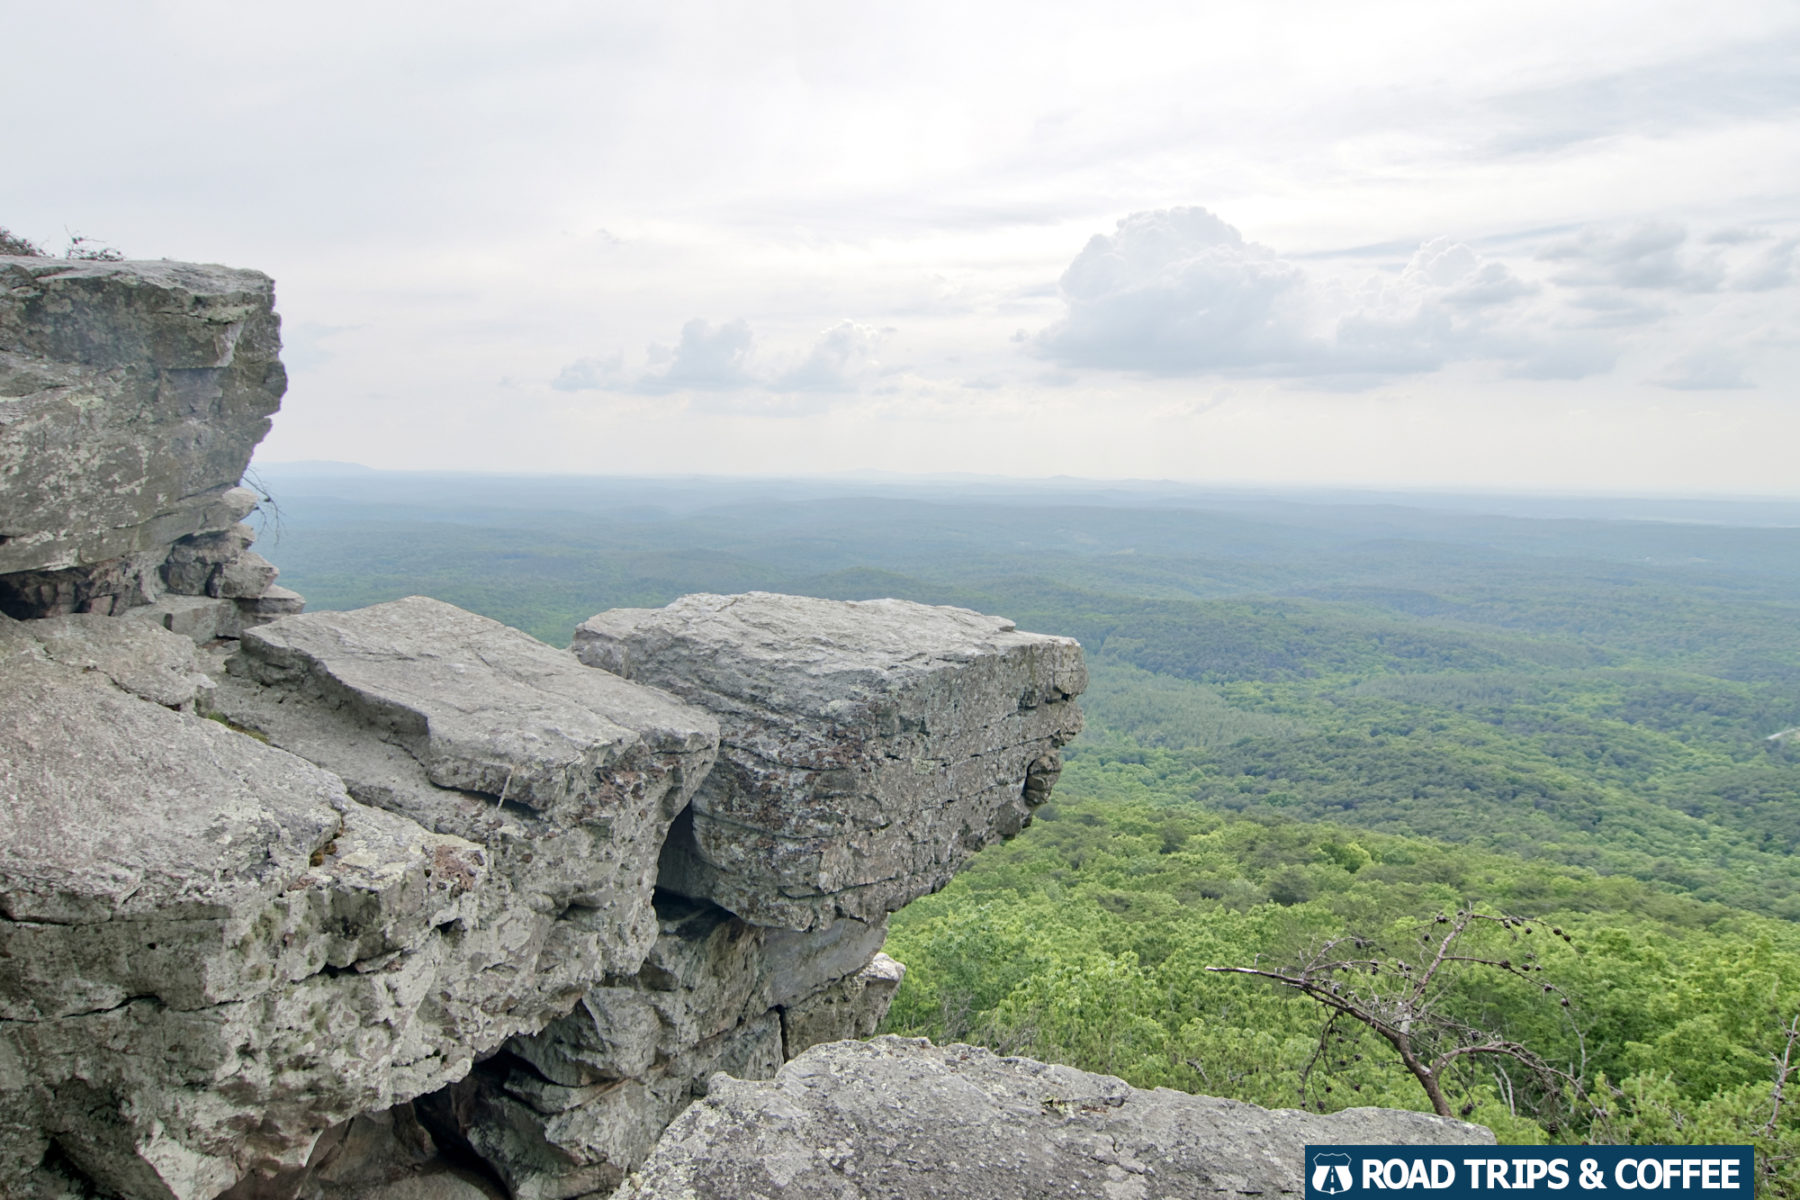 View at the edge of a cliff overlooking a vast landscape from Pulpit Rock at Cheaha State Park in Alabama.